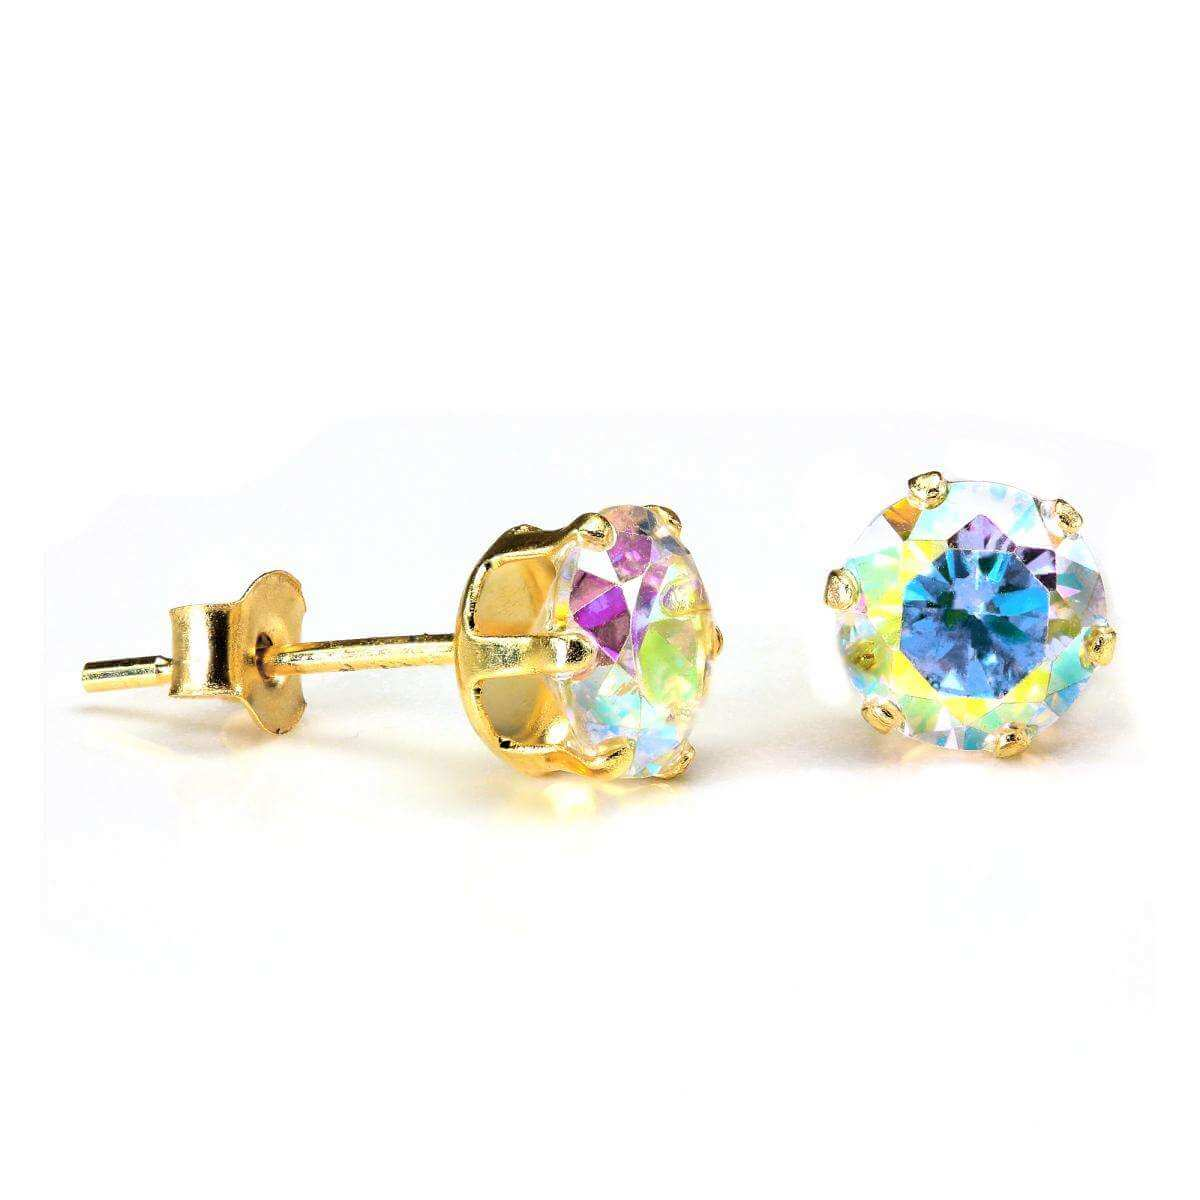 9ct Gold & 5mm Round Aurora Borealis Crystal Stud Earrings